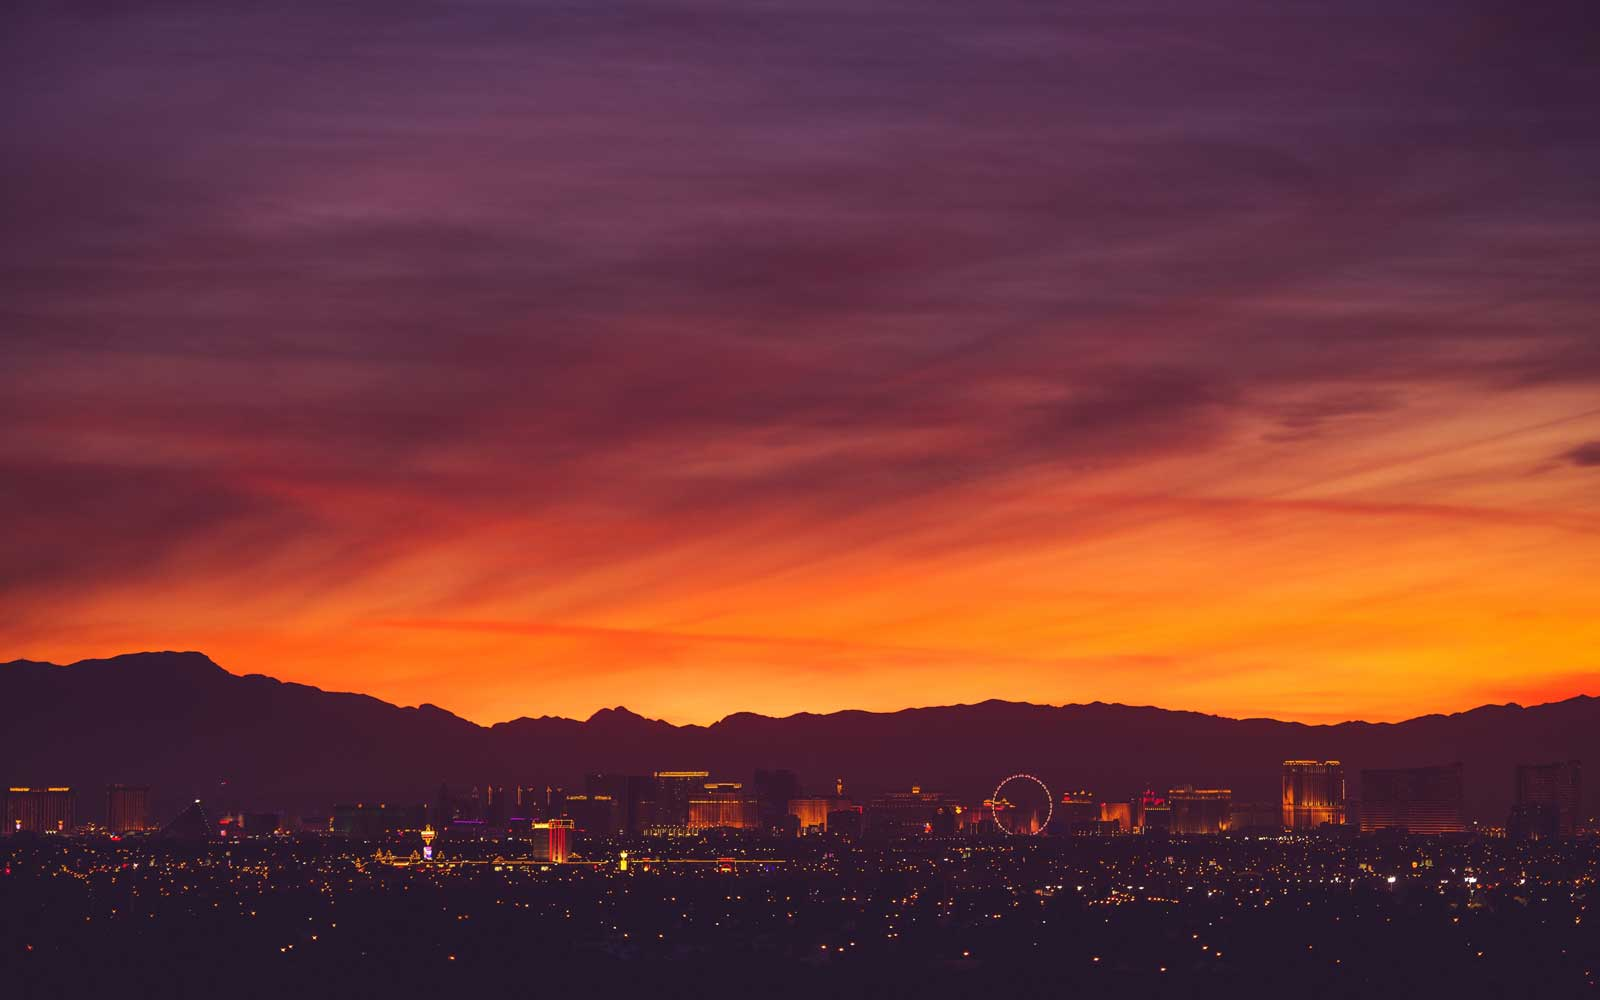 Fly to destinations like Las Vegas for less with Southwest's latest sale.